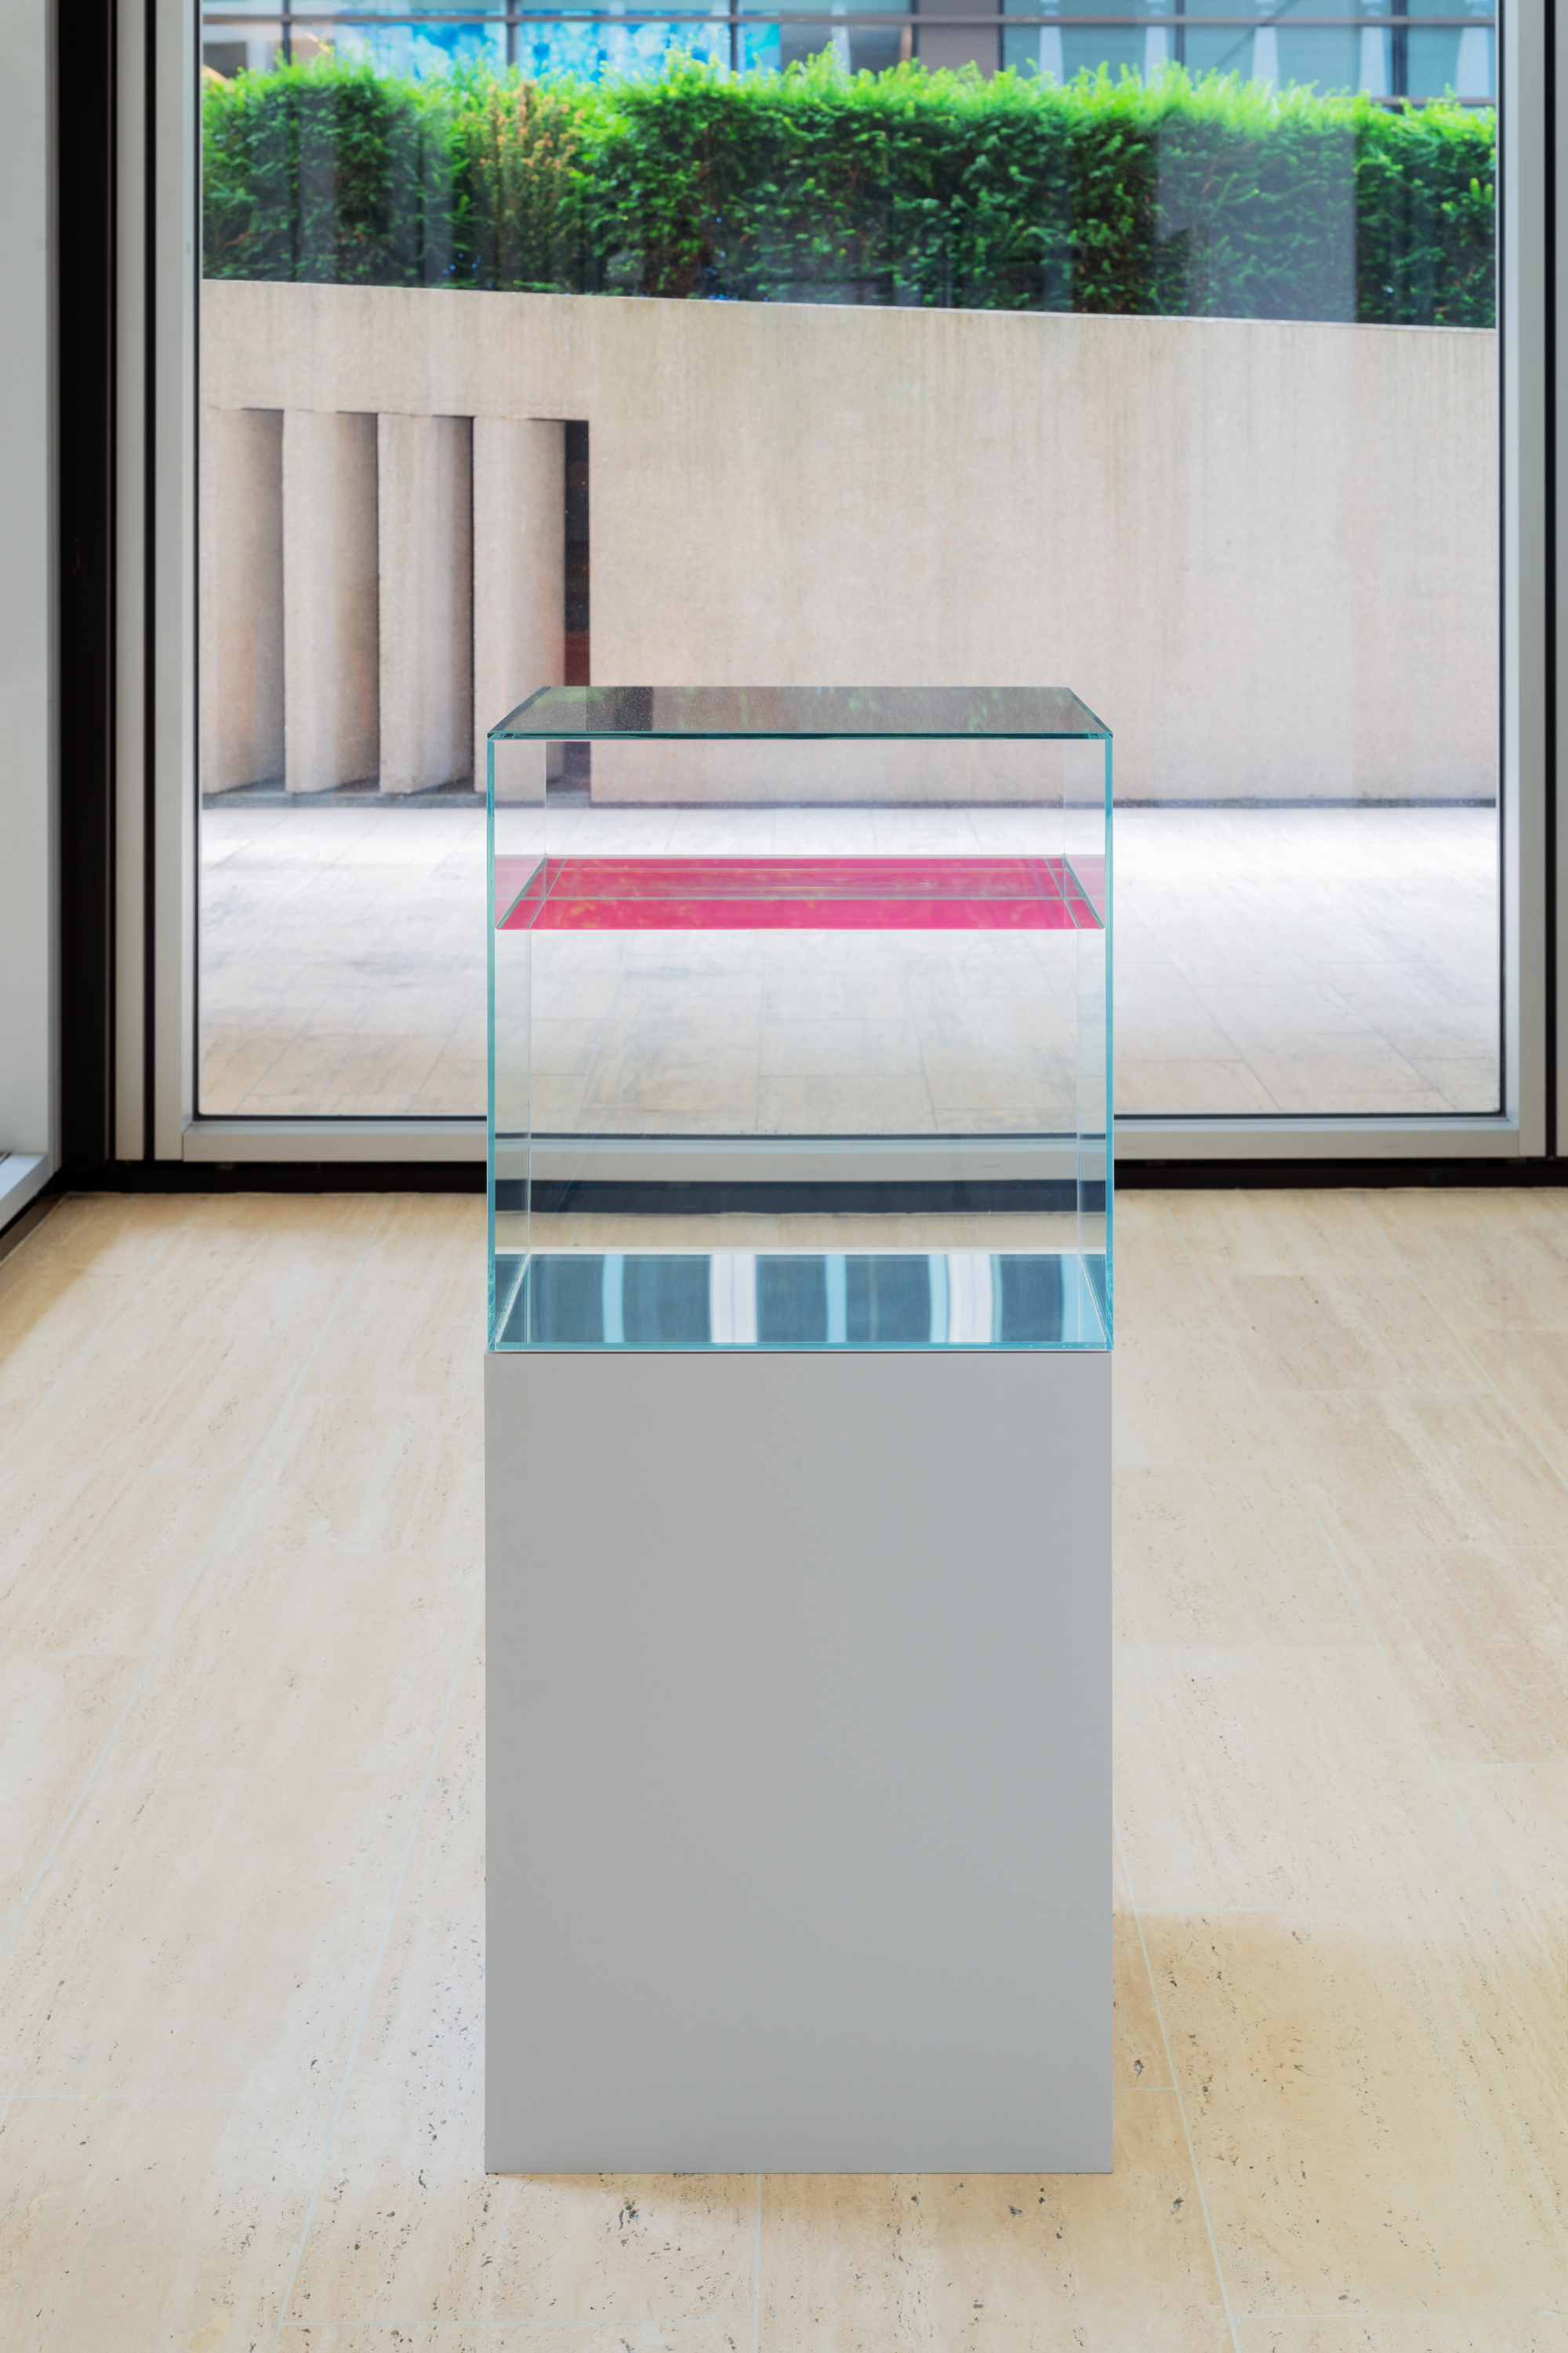 Pink and Bright Green by Ann Veronica Janssens are two glass cubes filled with paraffin oil.